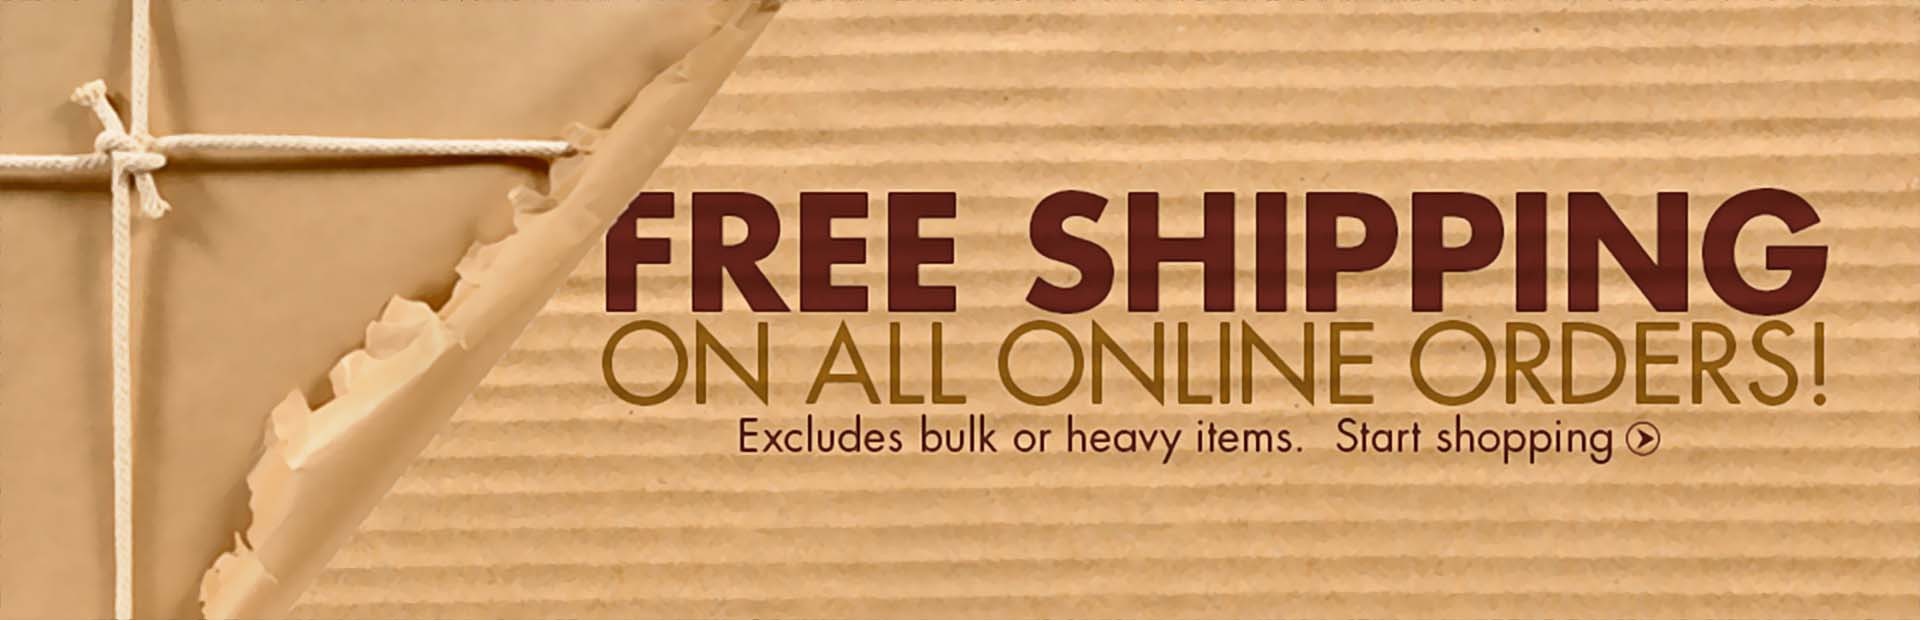 Get free shipping on all online orders! Offer excludes bulk or heavy items. Click here to start shopping.